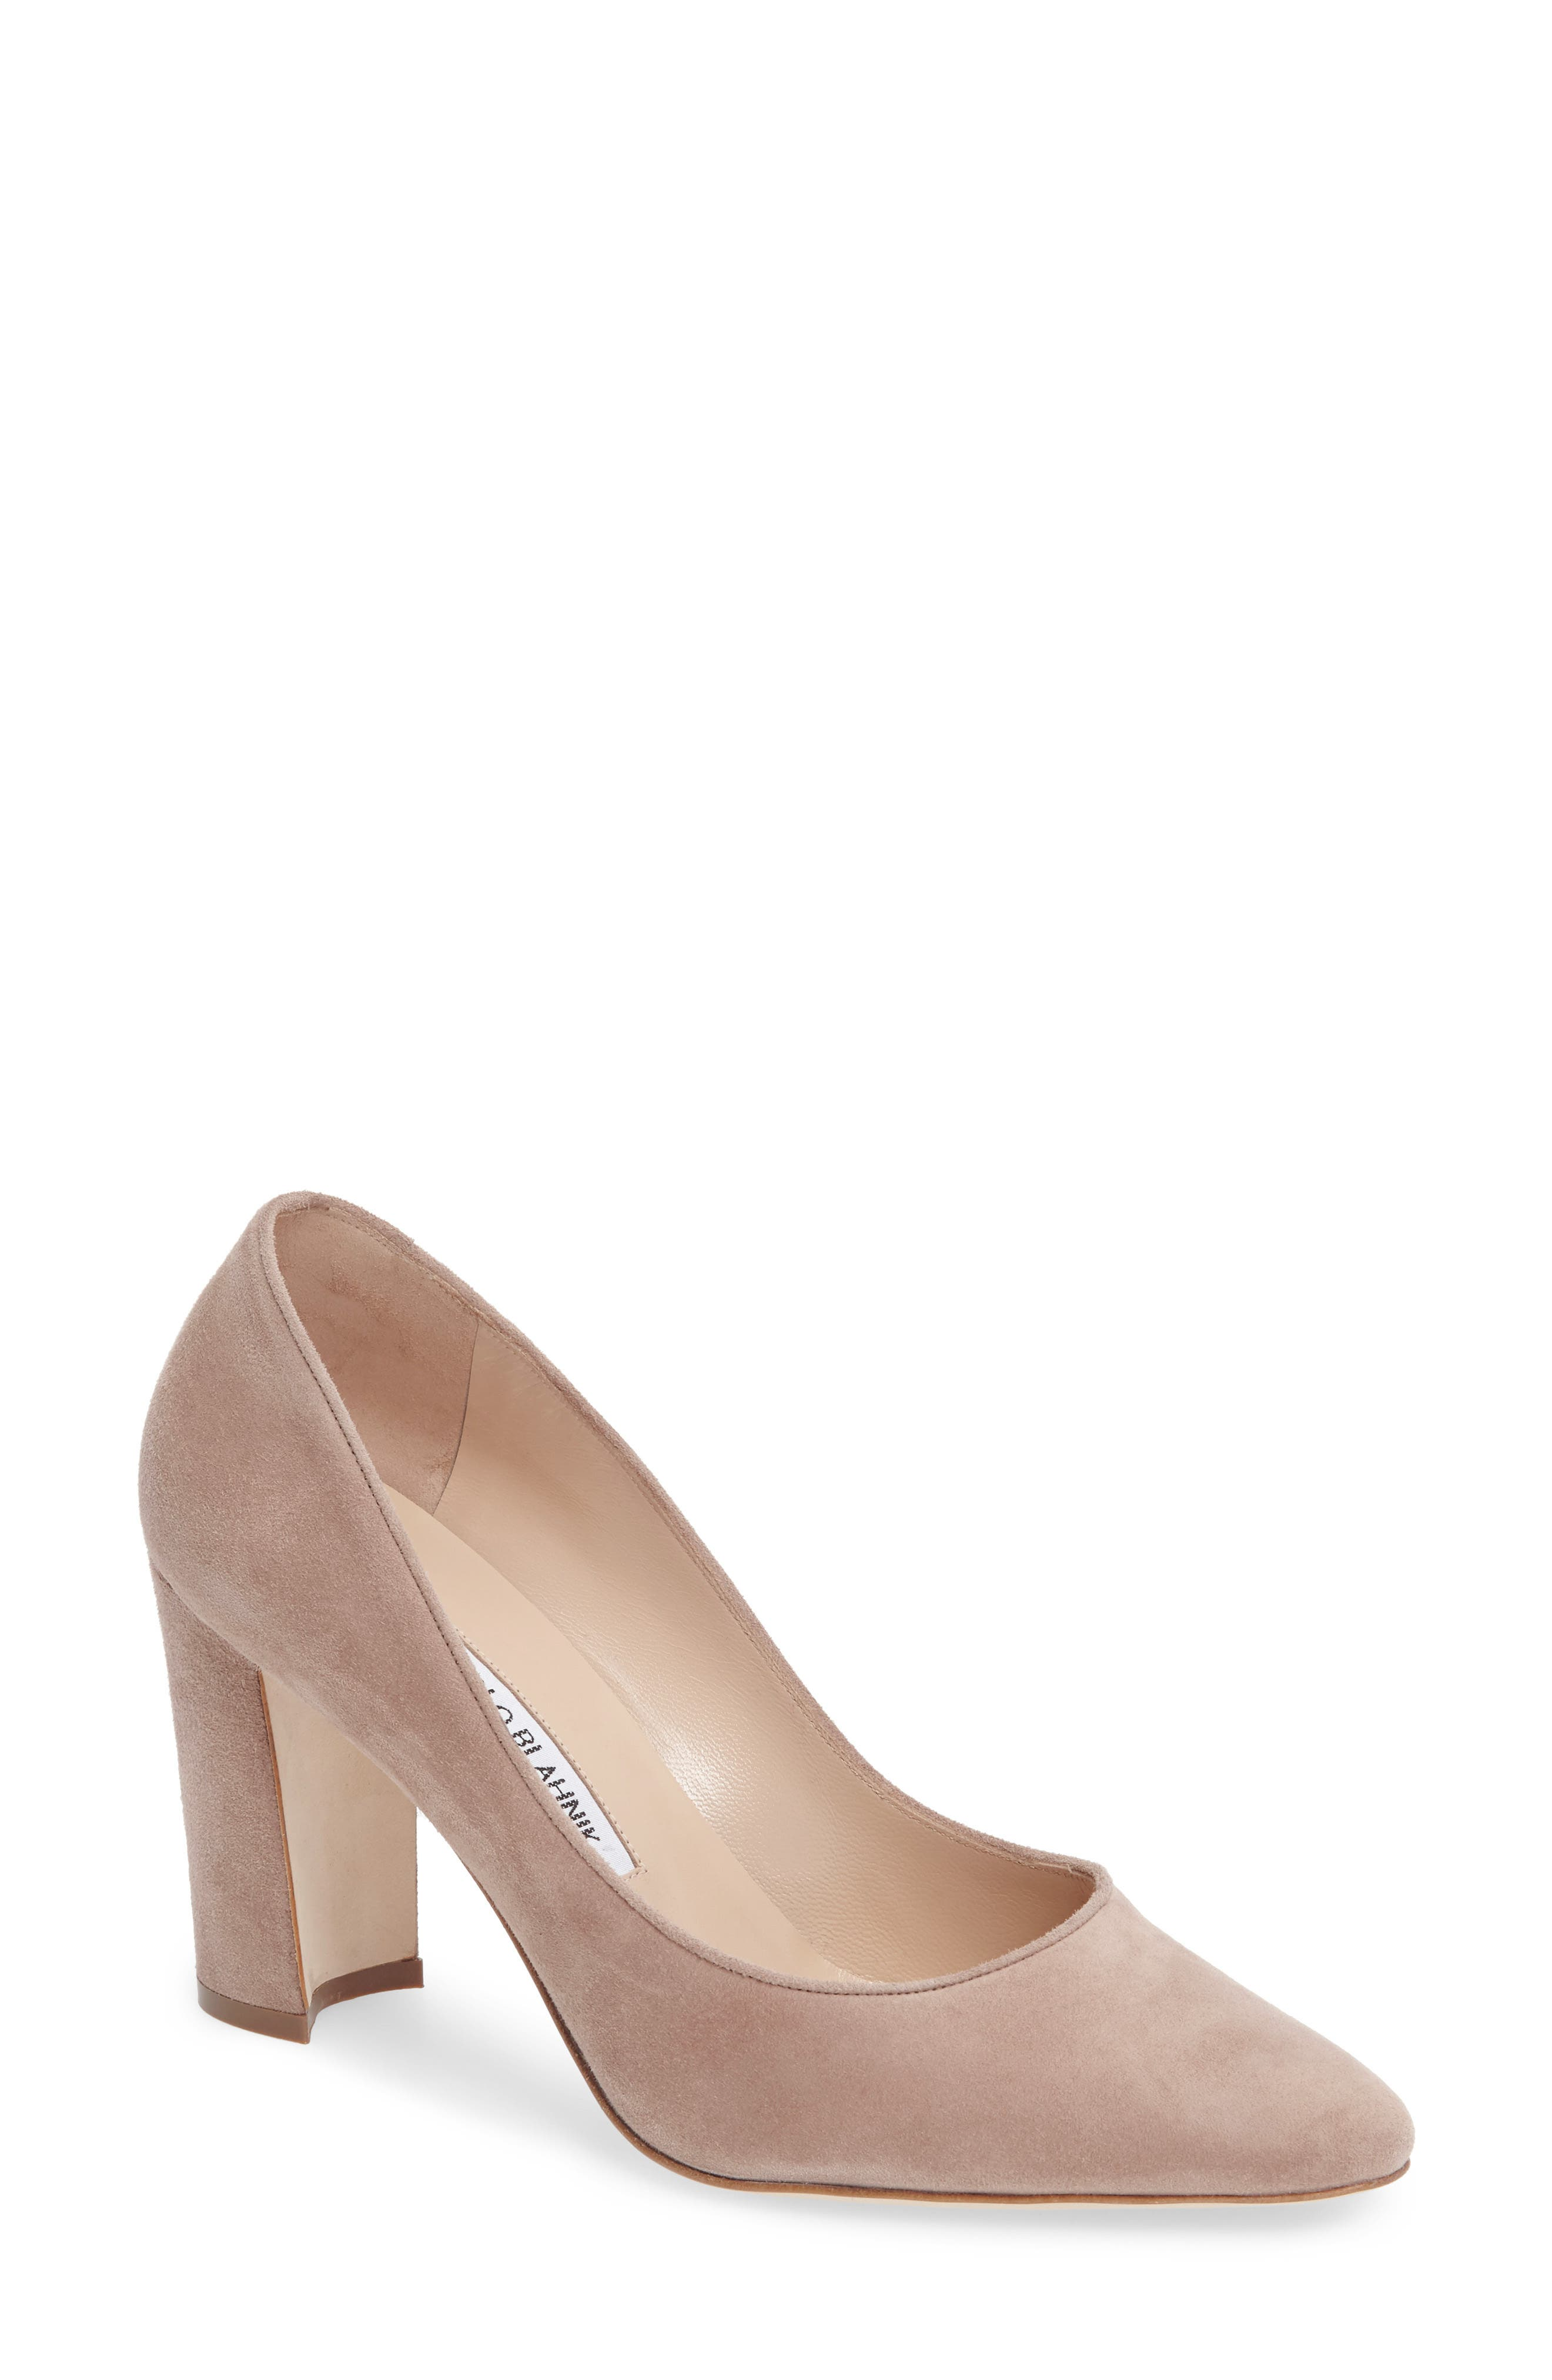 Alternate Image 1 Selected - Manolo Blahnik Tucciototo Block Heel Pump (Women)